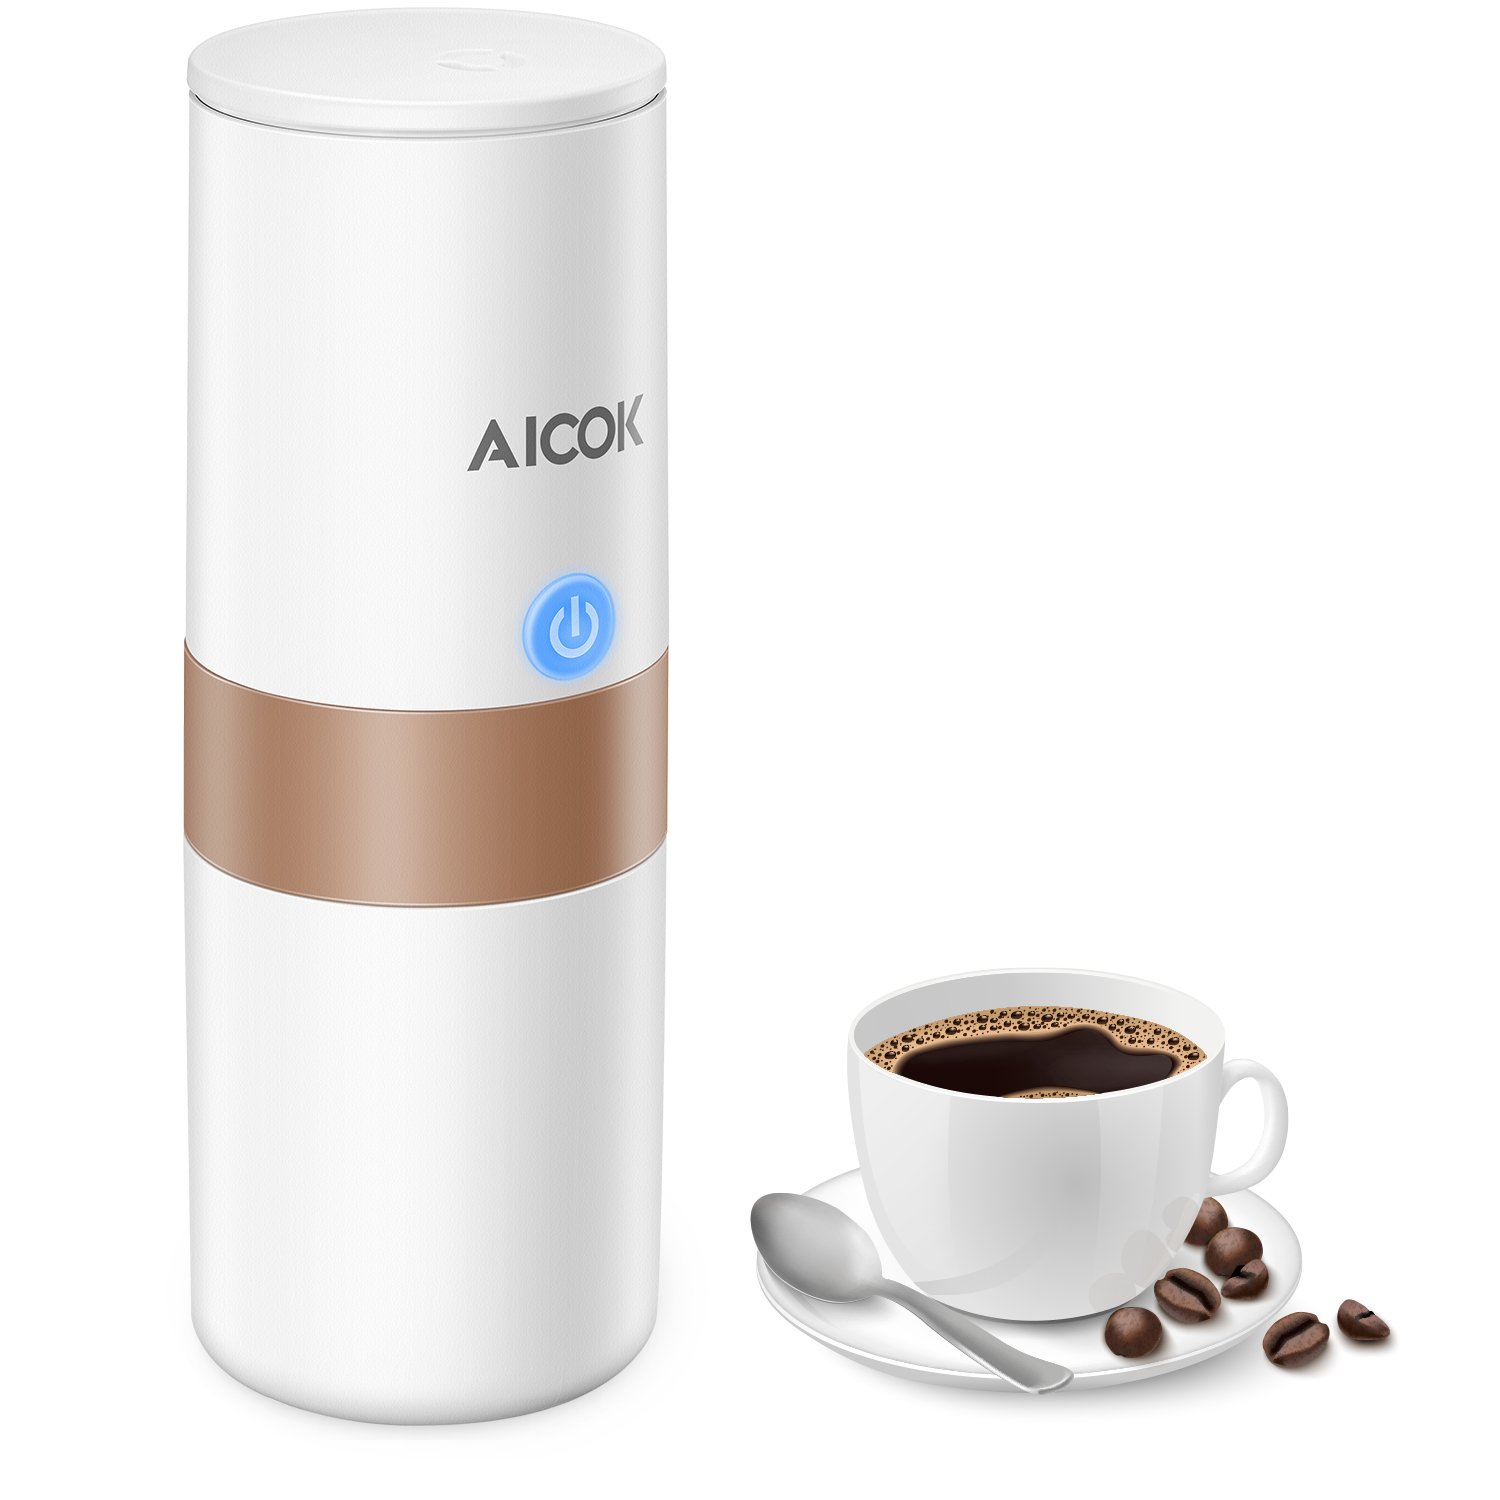 Aicok Portable Coffee Maker, Mini Electric Coffee Machine with Reusable Coffee Filter (Ground Coffee & Amercian Coffee Capsule Compatible), Quick Coffee Machine for Travel, Home, Office, 150ML